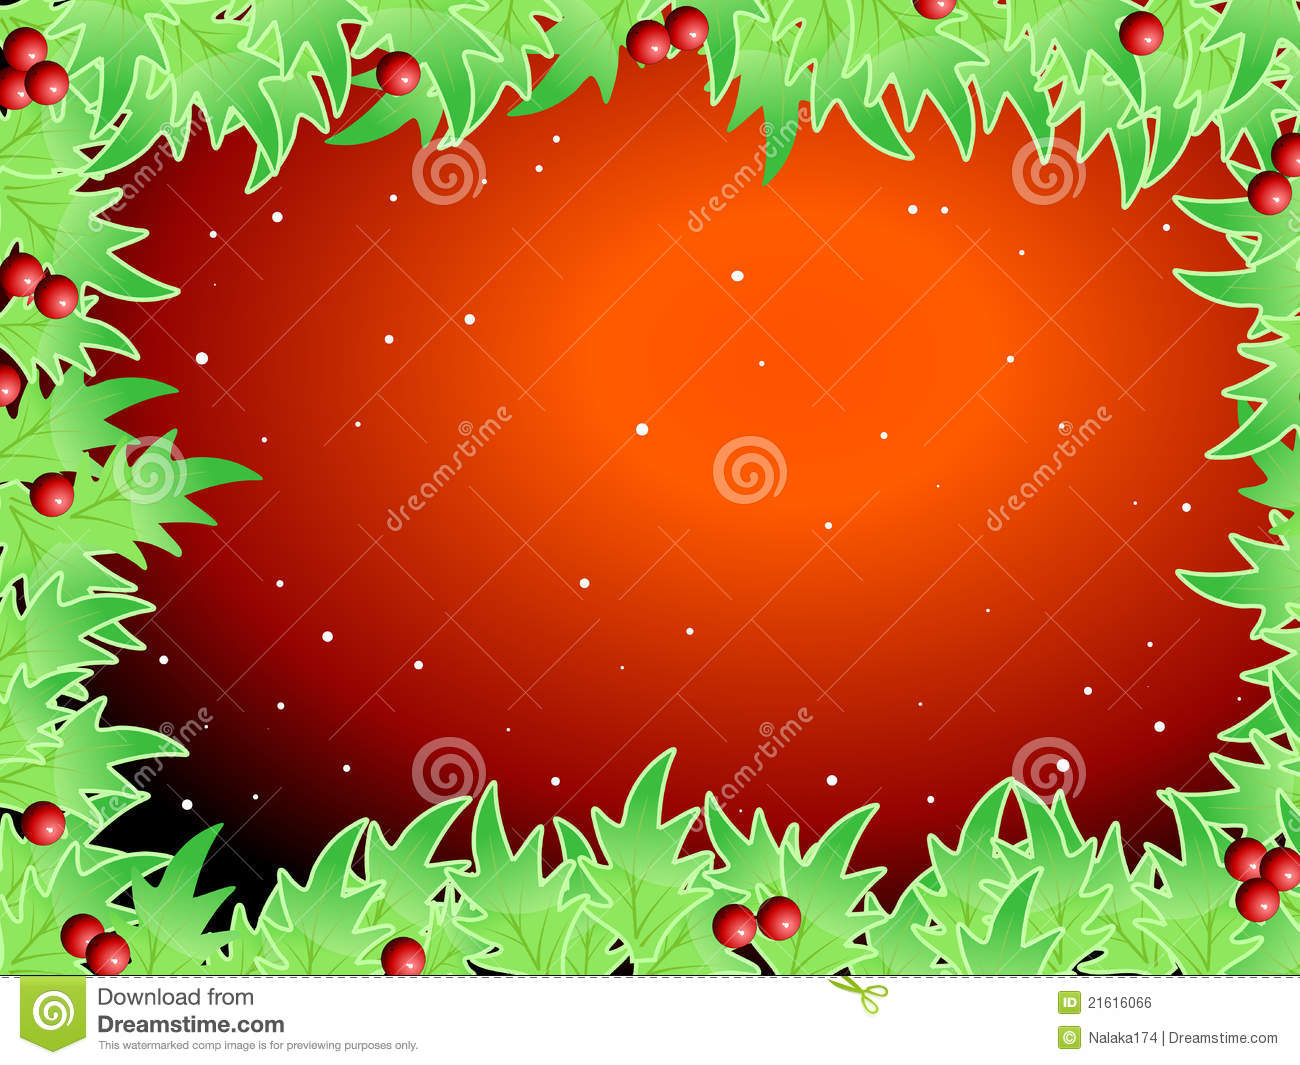 Blank Template For Christmas Greetings Card Stock